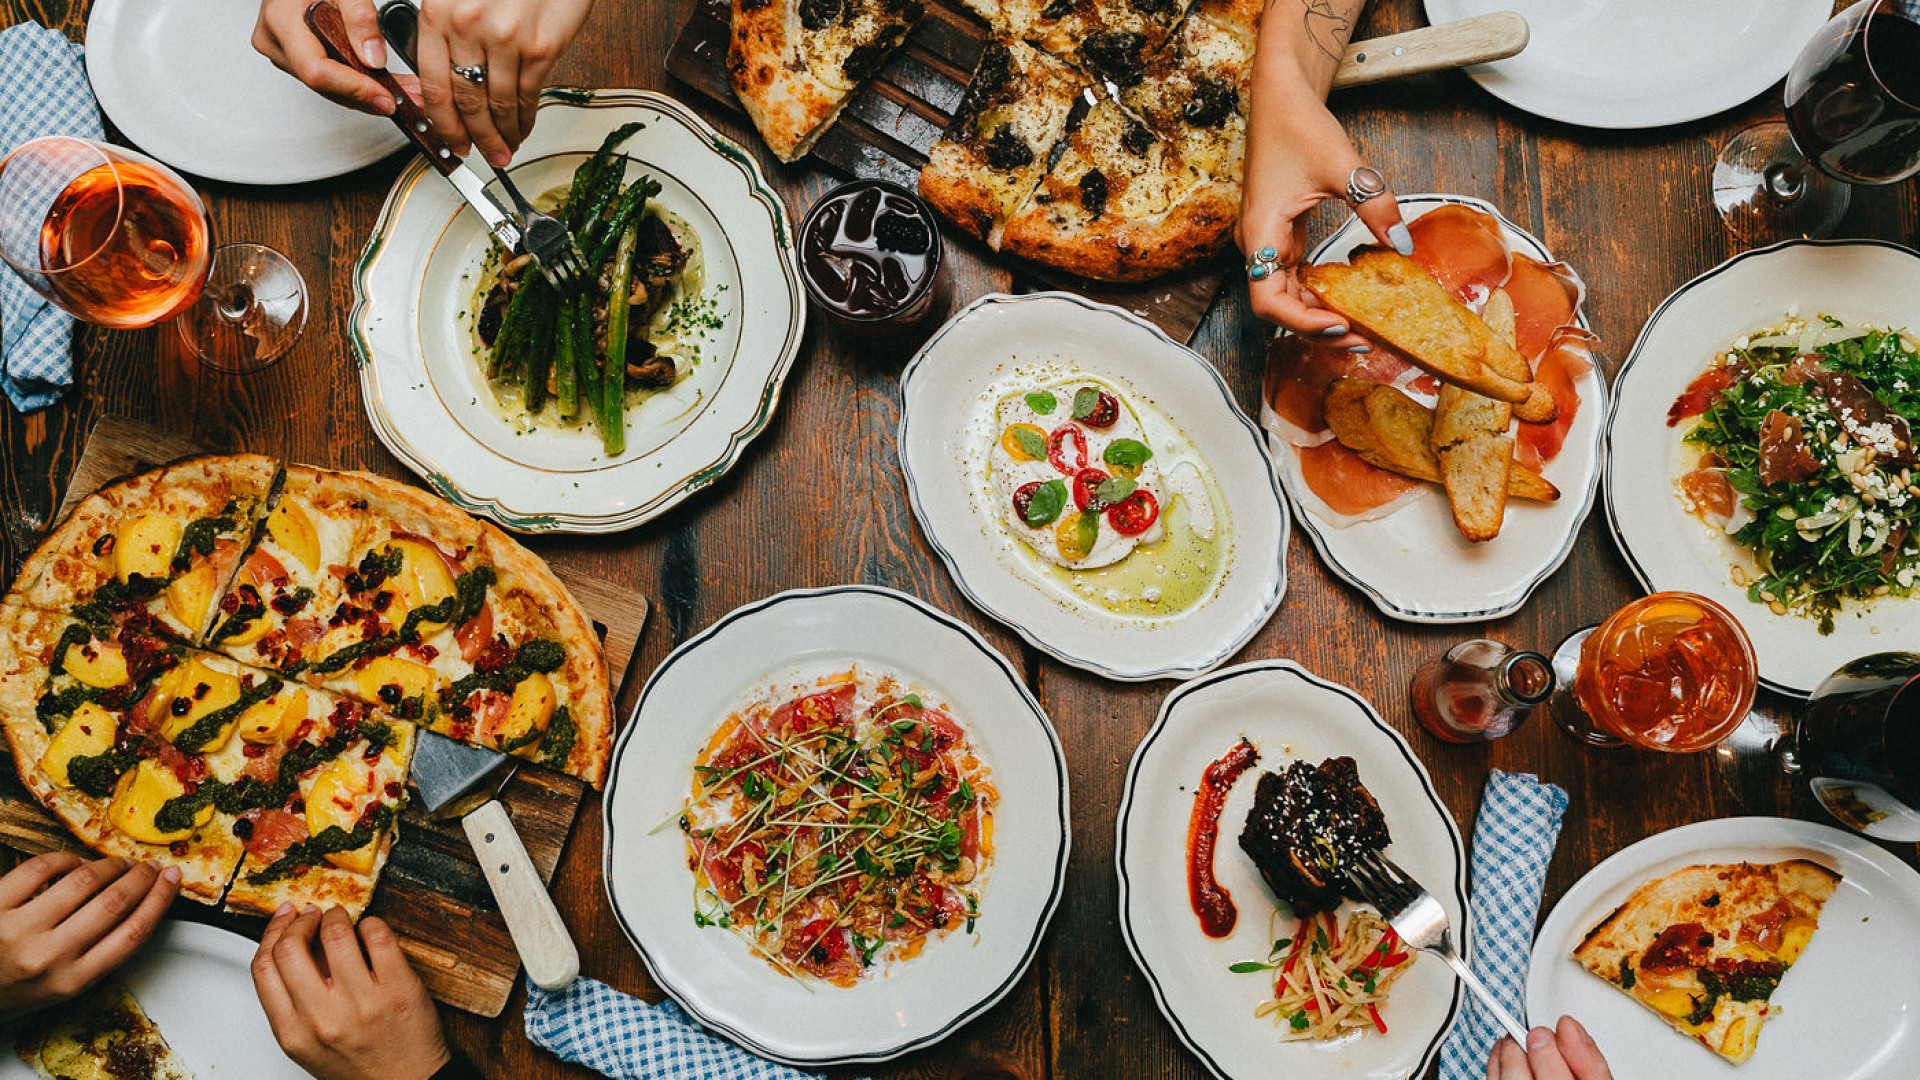 The best pizza in Toronto | A spread of pizza and other dishes at the Parlour on King West